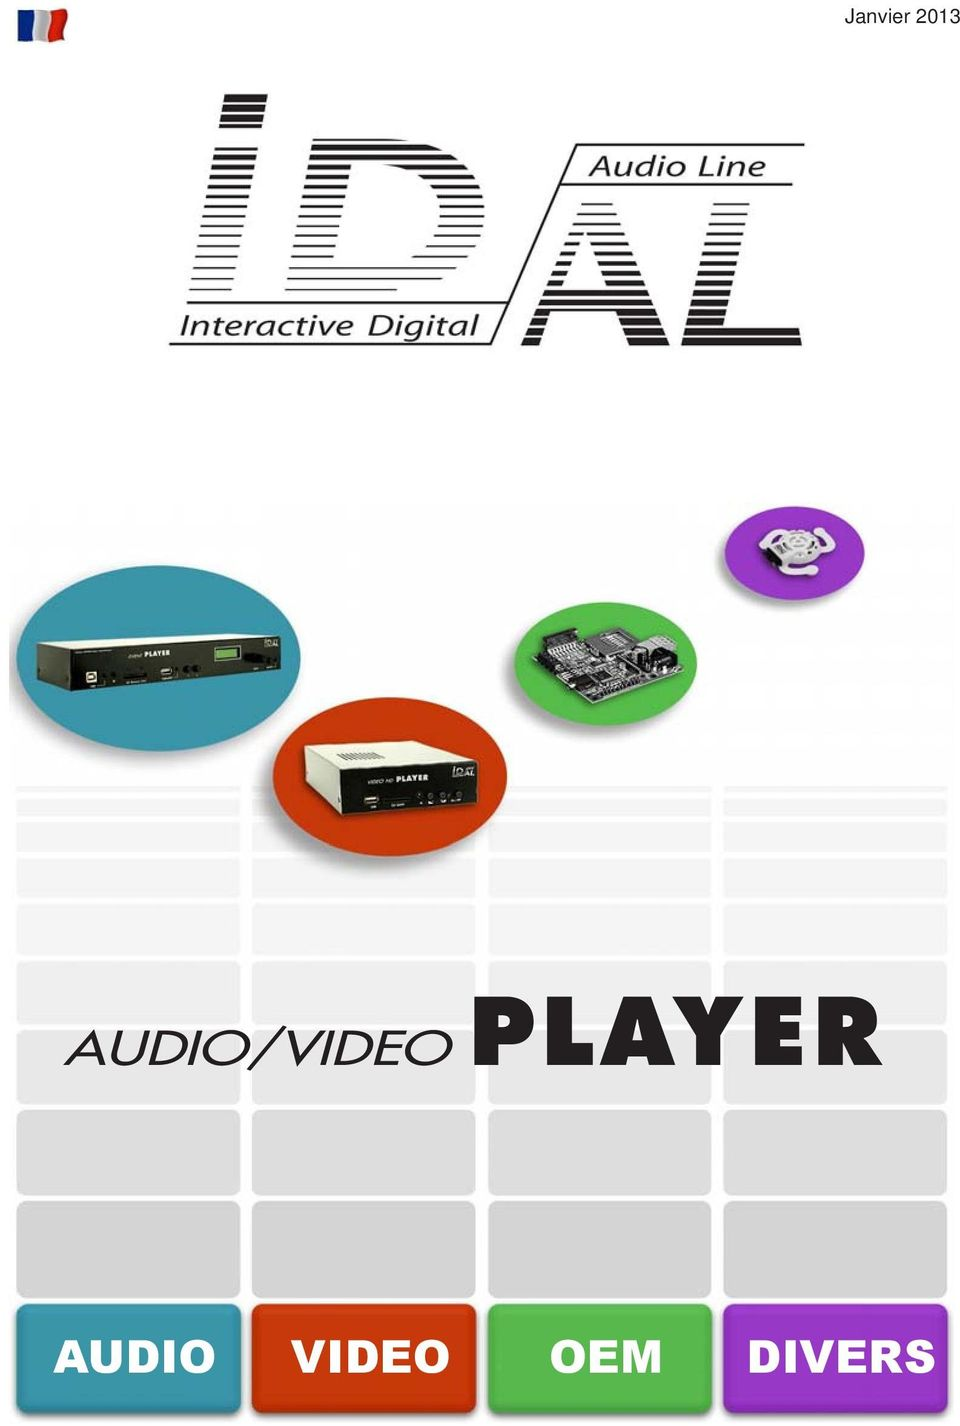 PLAYER AUDIO